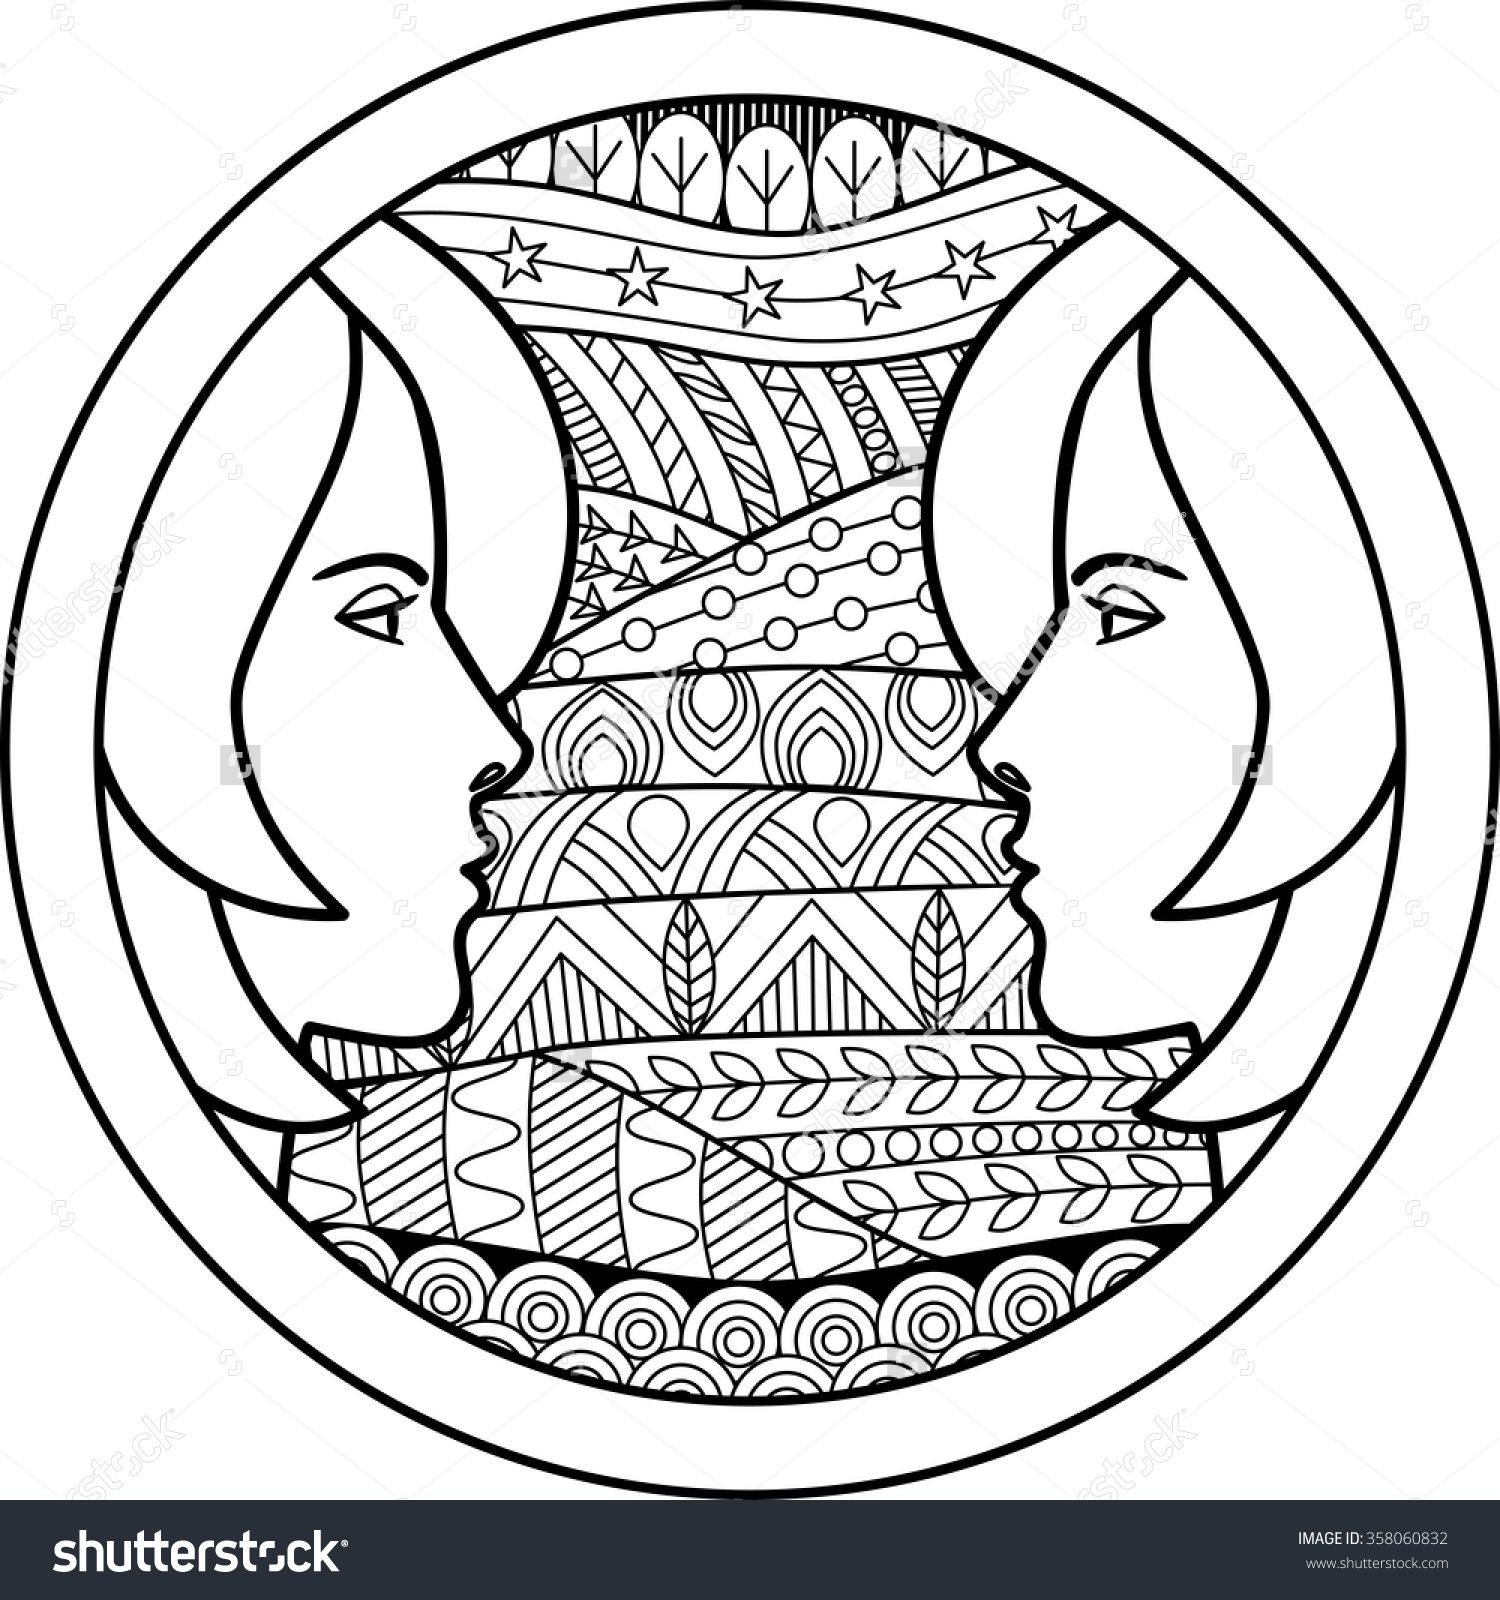 Zodiac sign Gemini zentangle | Zodiac Coloring Pages for Adults ...